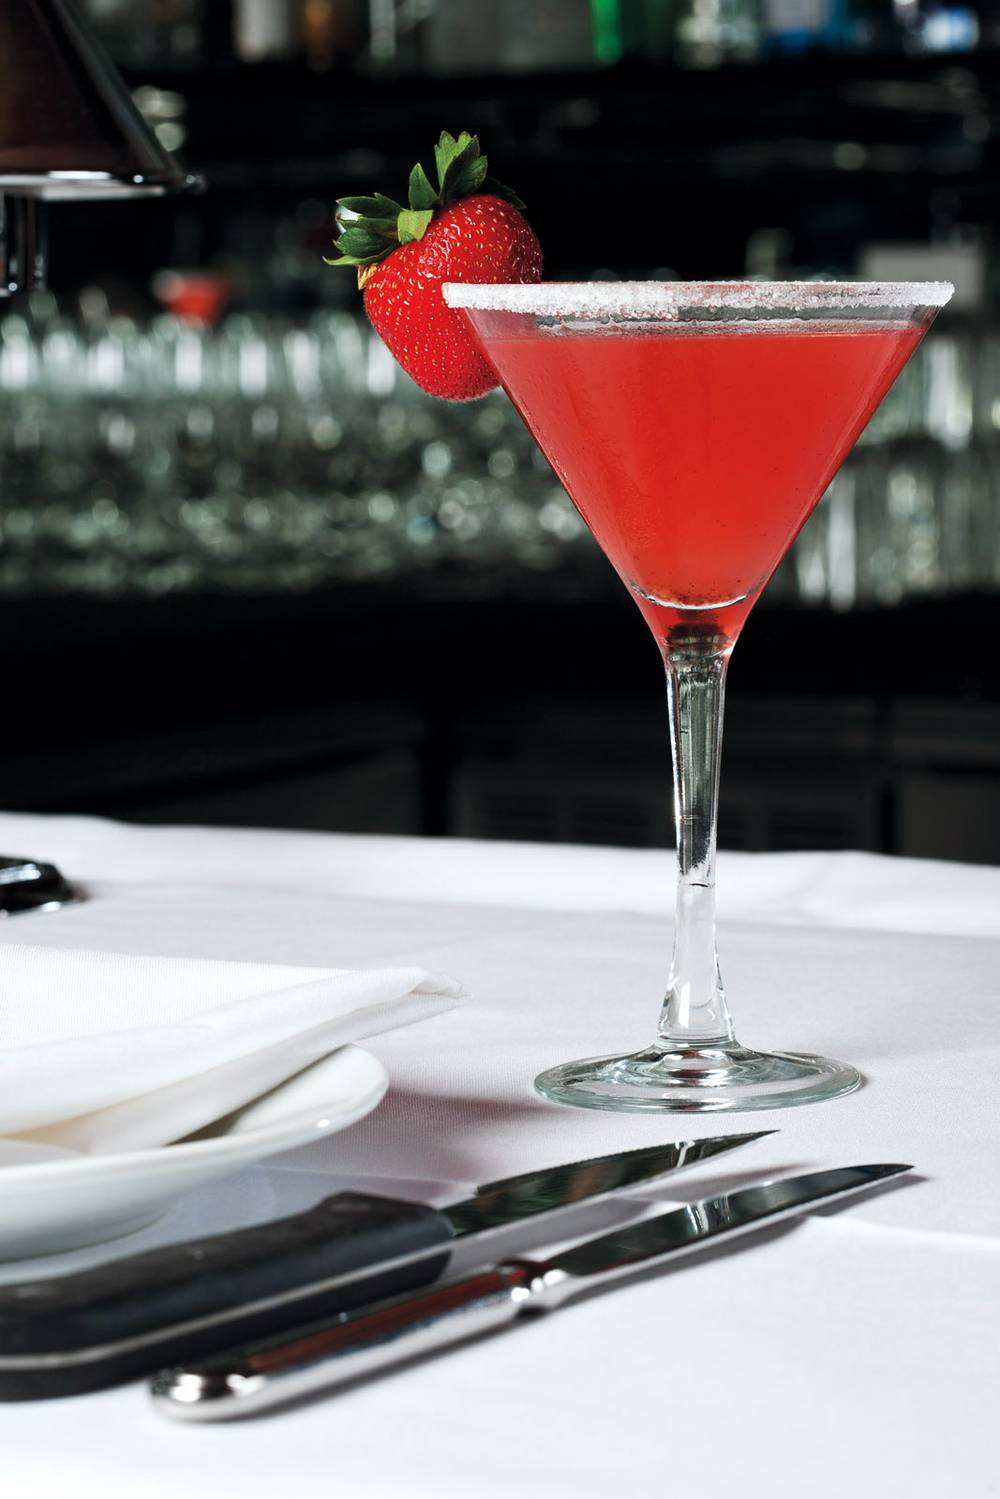 The Crystals Restaurant Sells 19,000 Dream Berry Cocktails Per Year. Daniel  Oliver